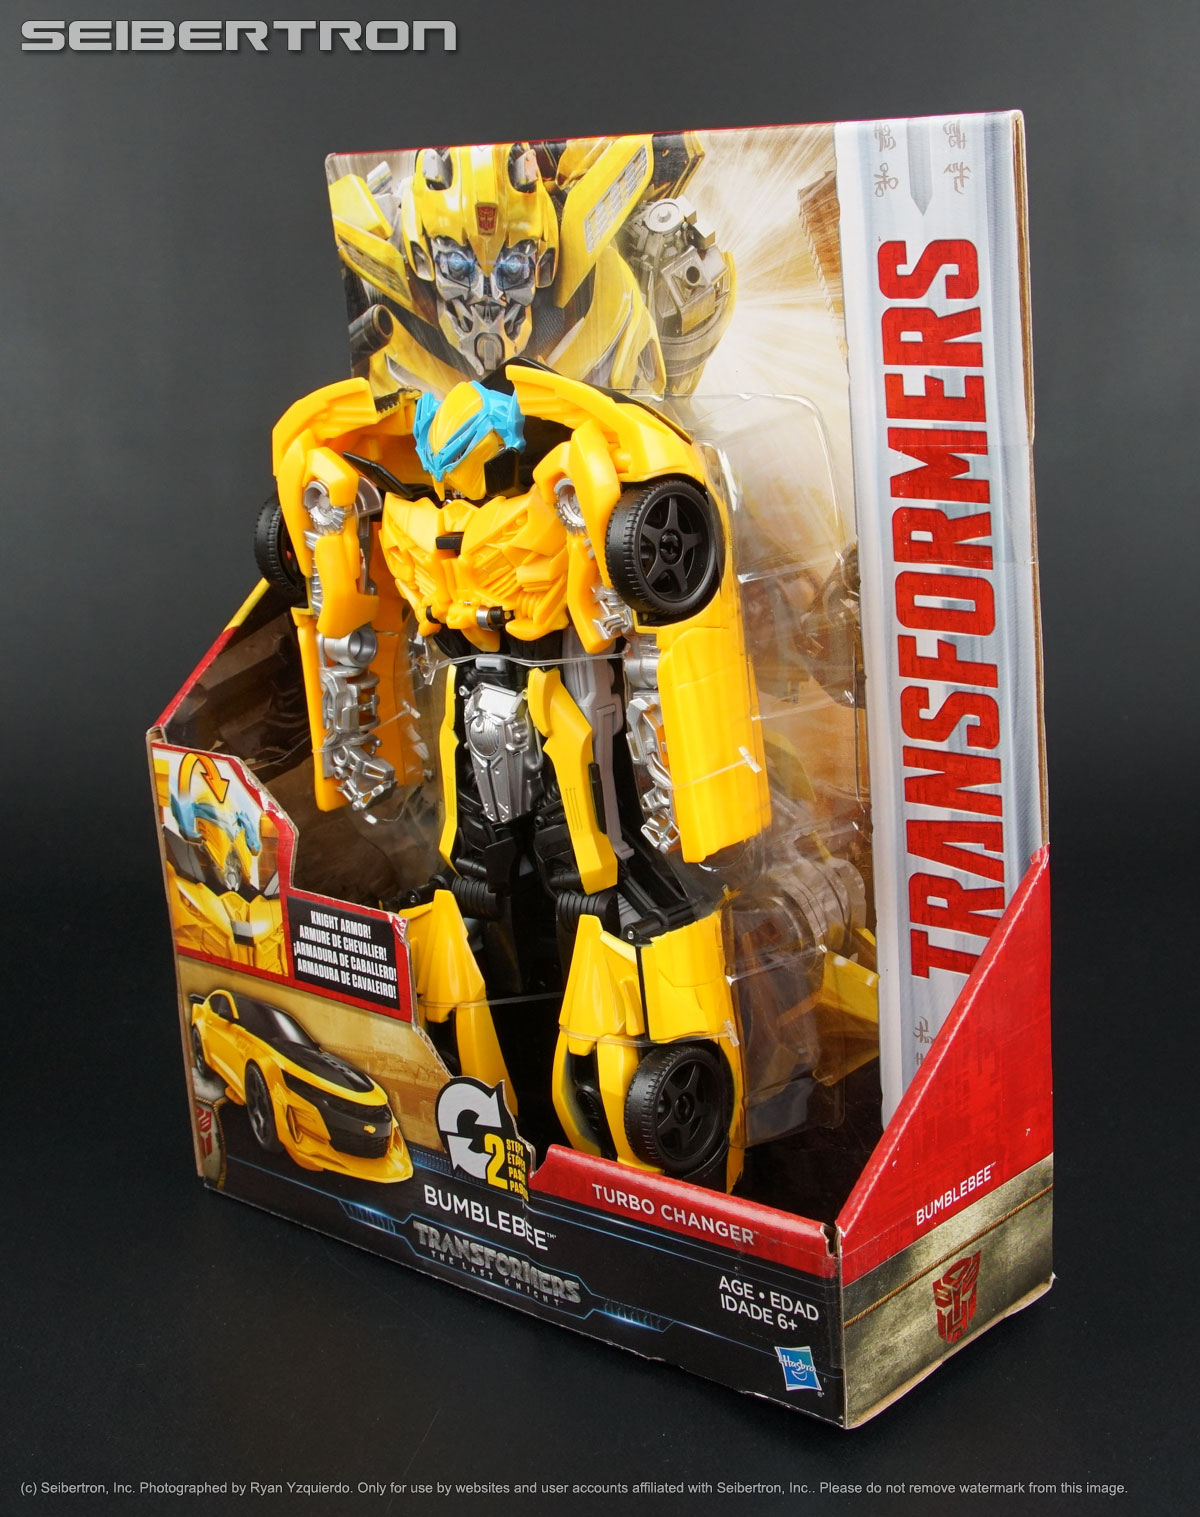 knight armor turbo changer bumblebee transformers last knight tlk new 2017 ebay. Black Bedroom Furniture Sets. Home Design Ideas